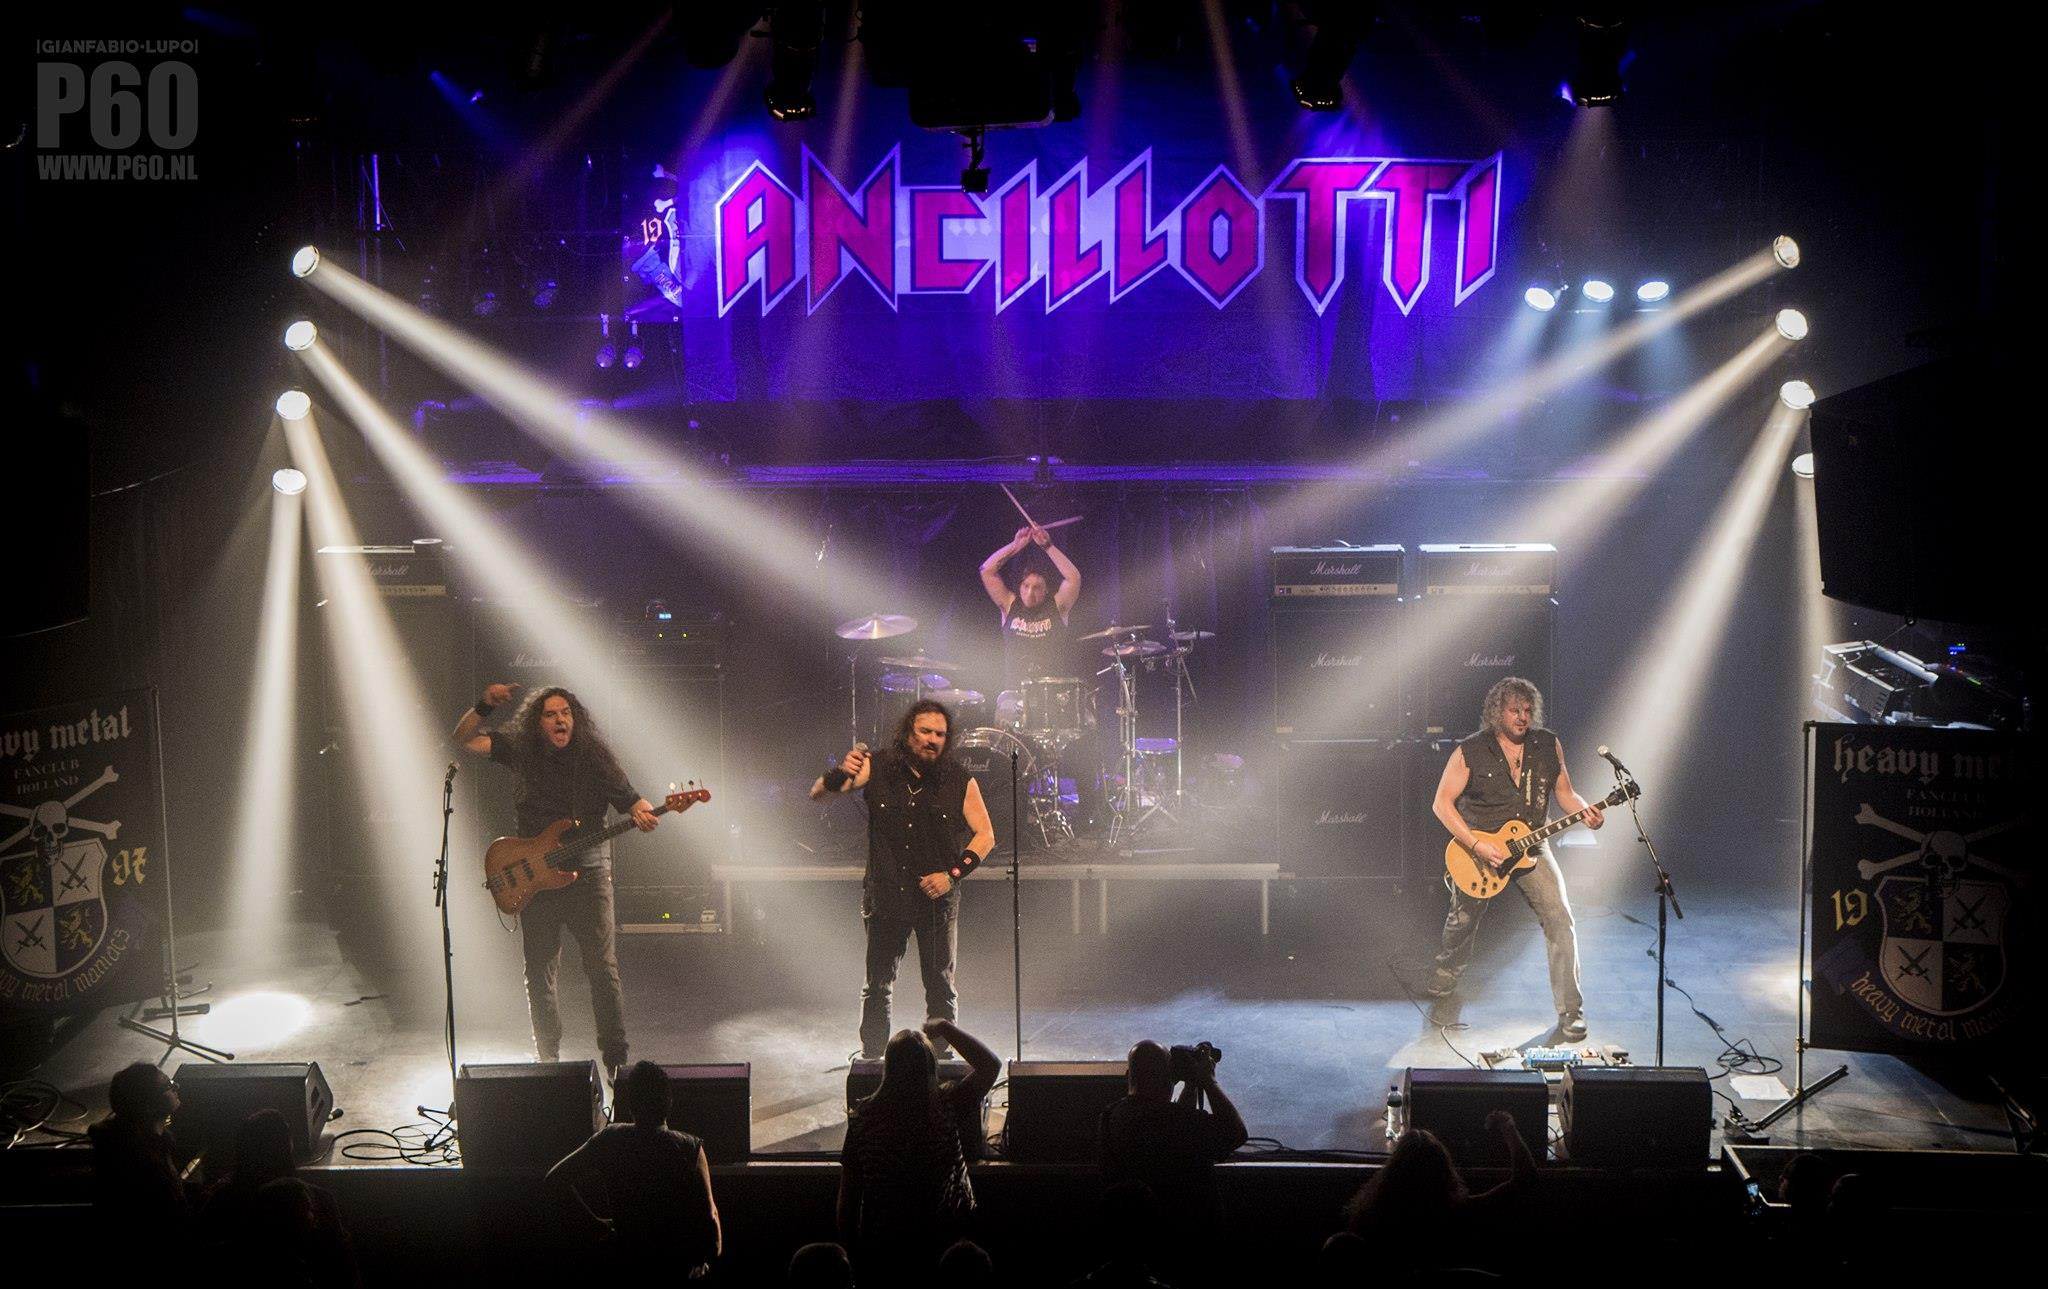 ancillotti-live-official